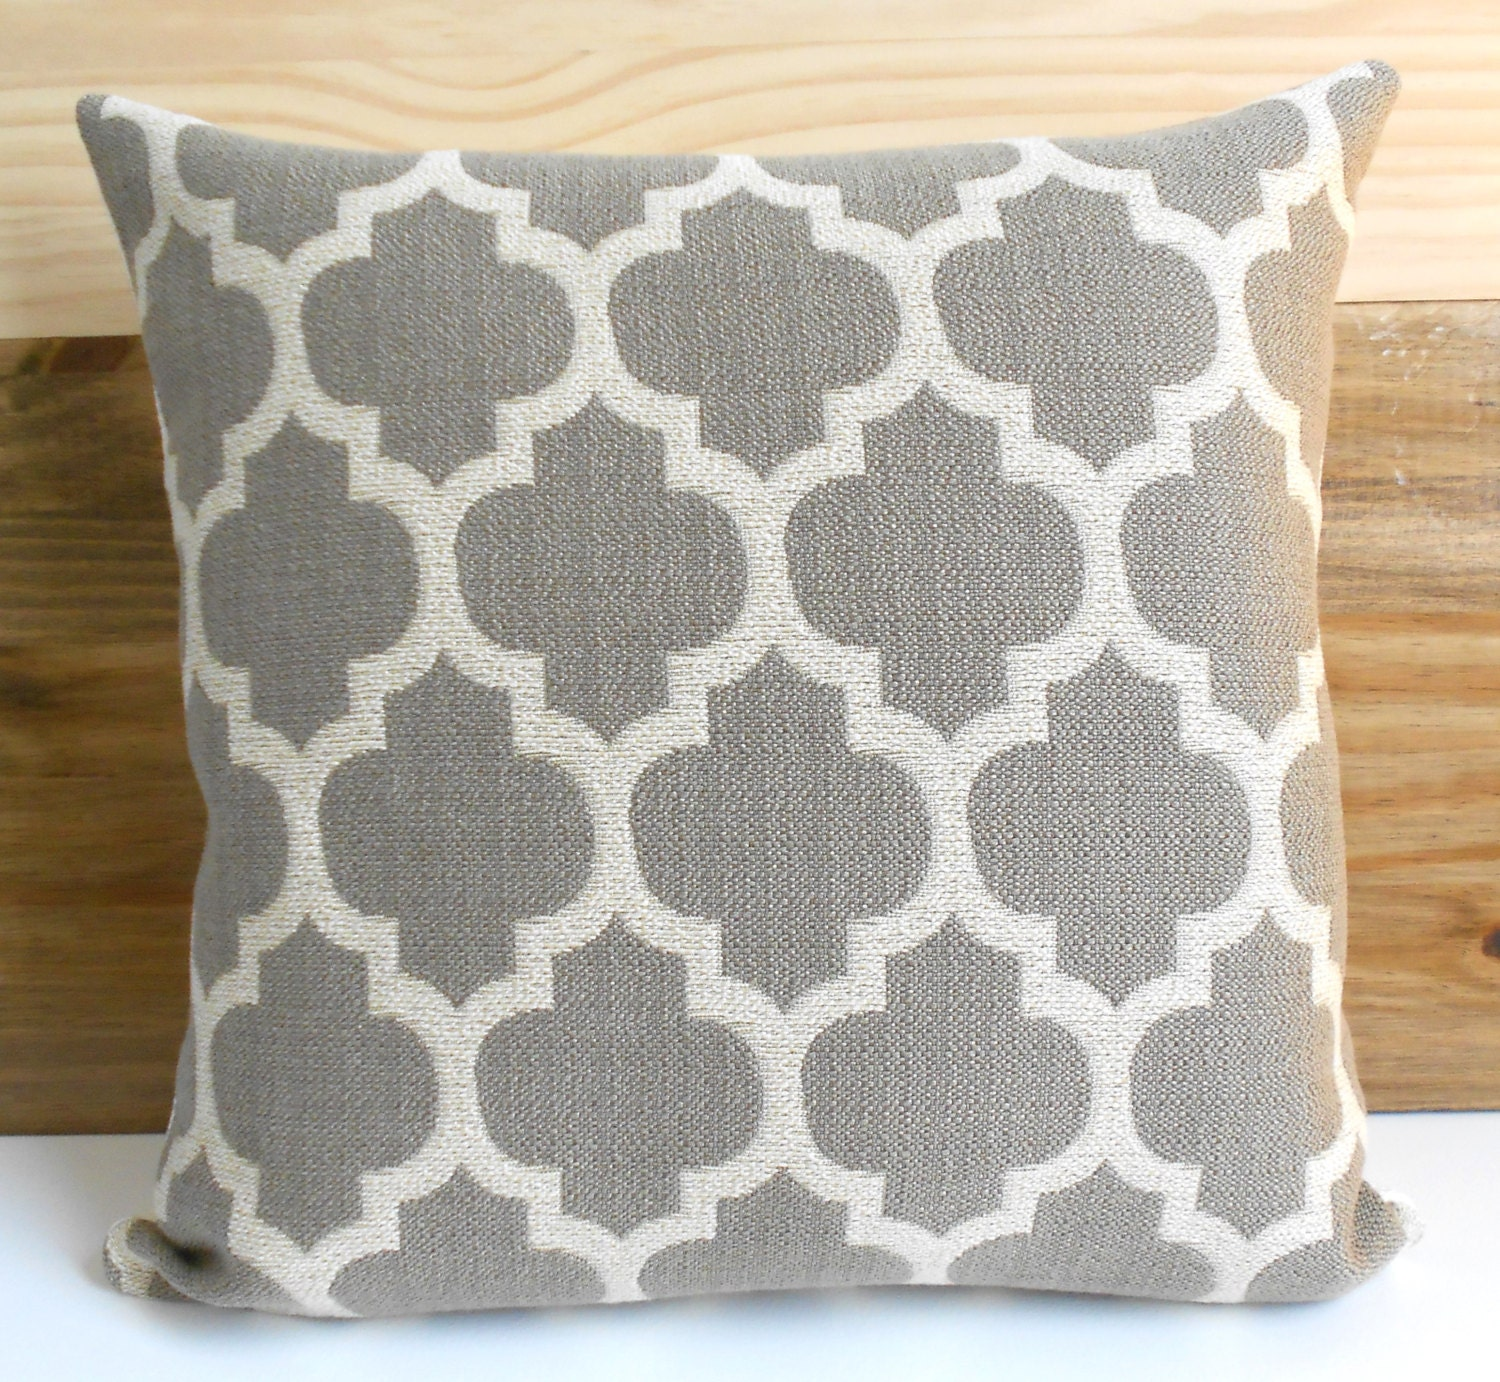 Throw Pillows Malum : Taupe and tan moroccan quatrefoil decorative throw pillow